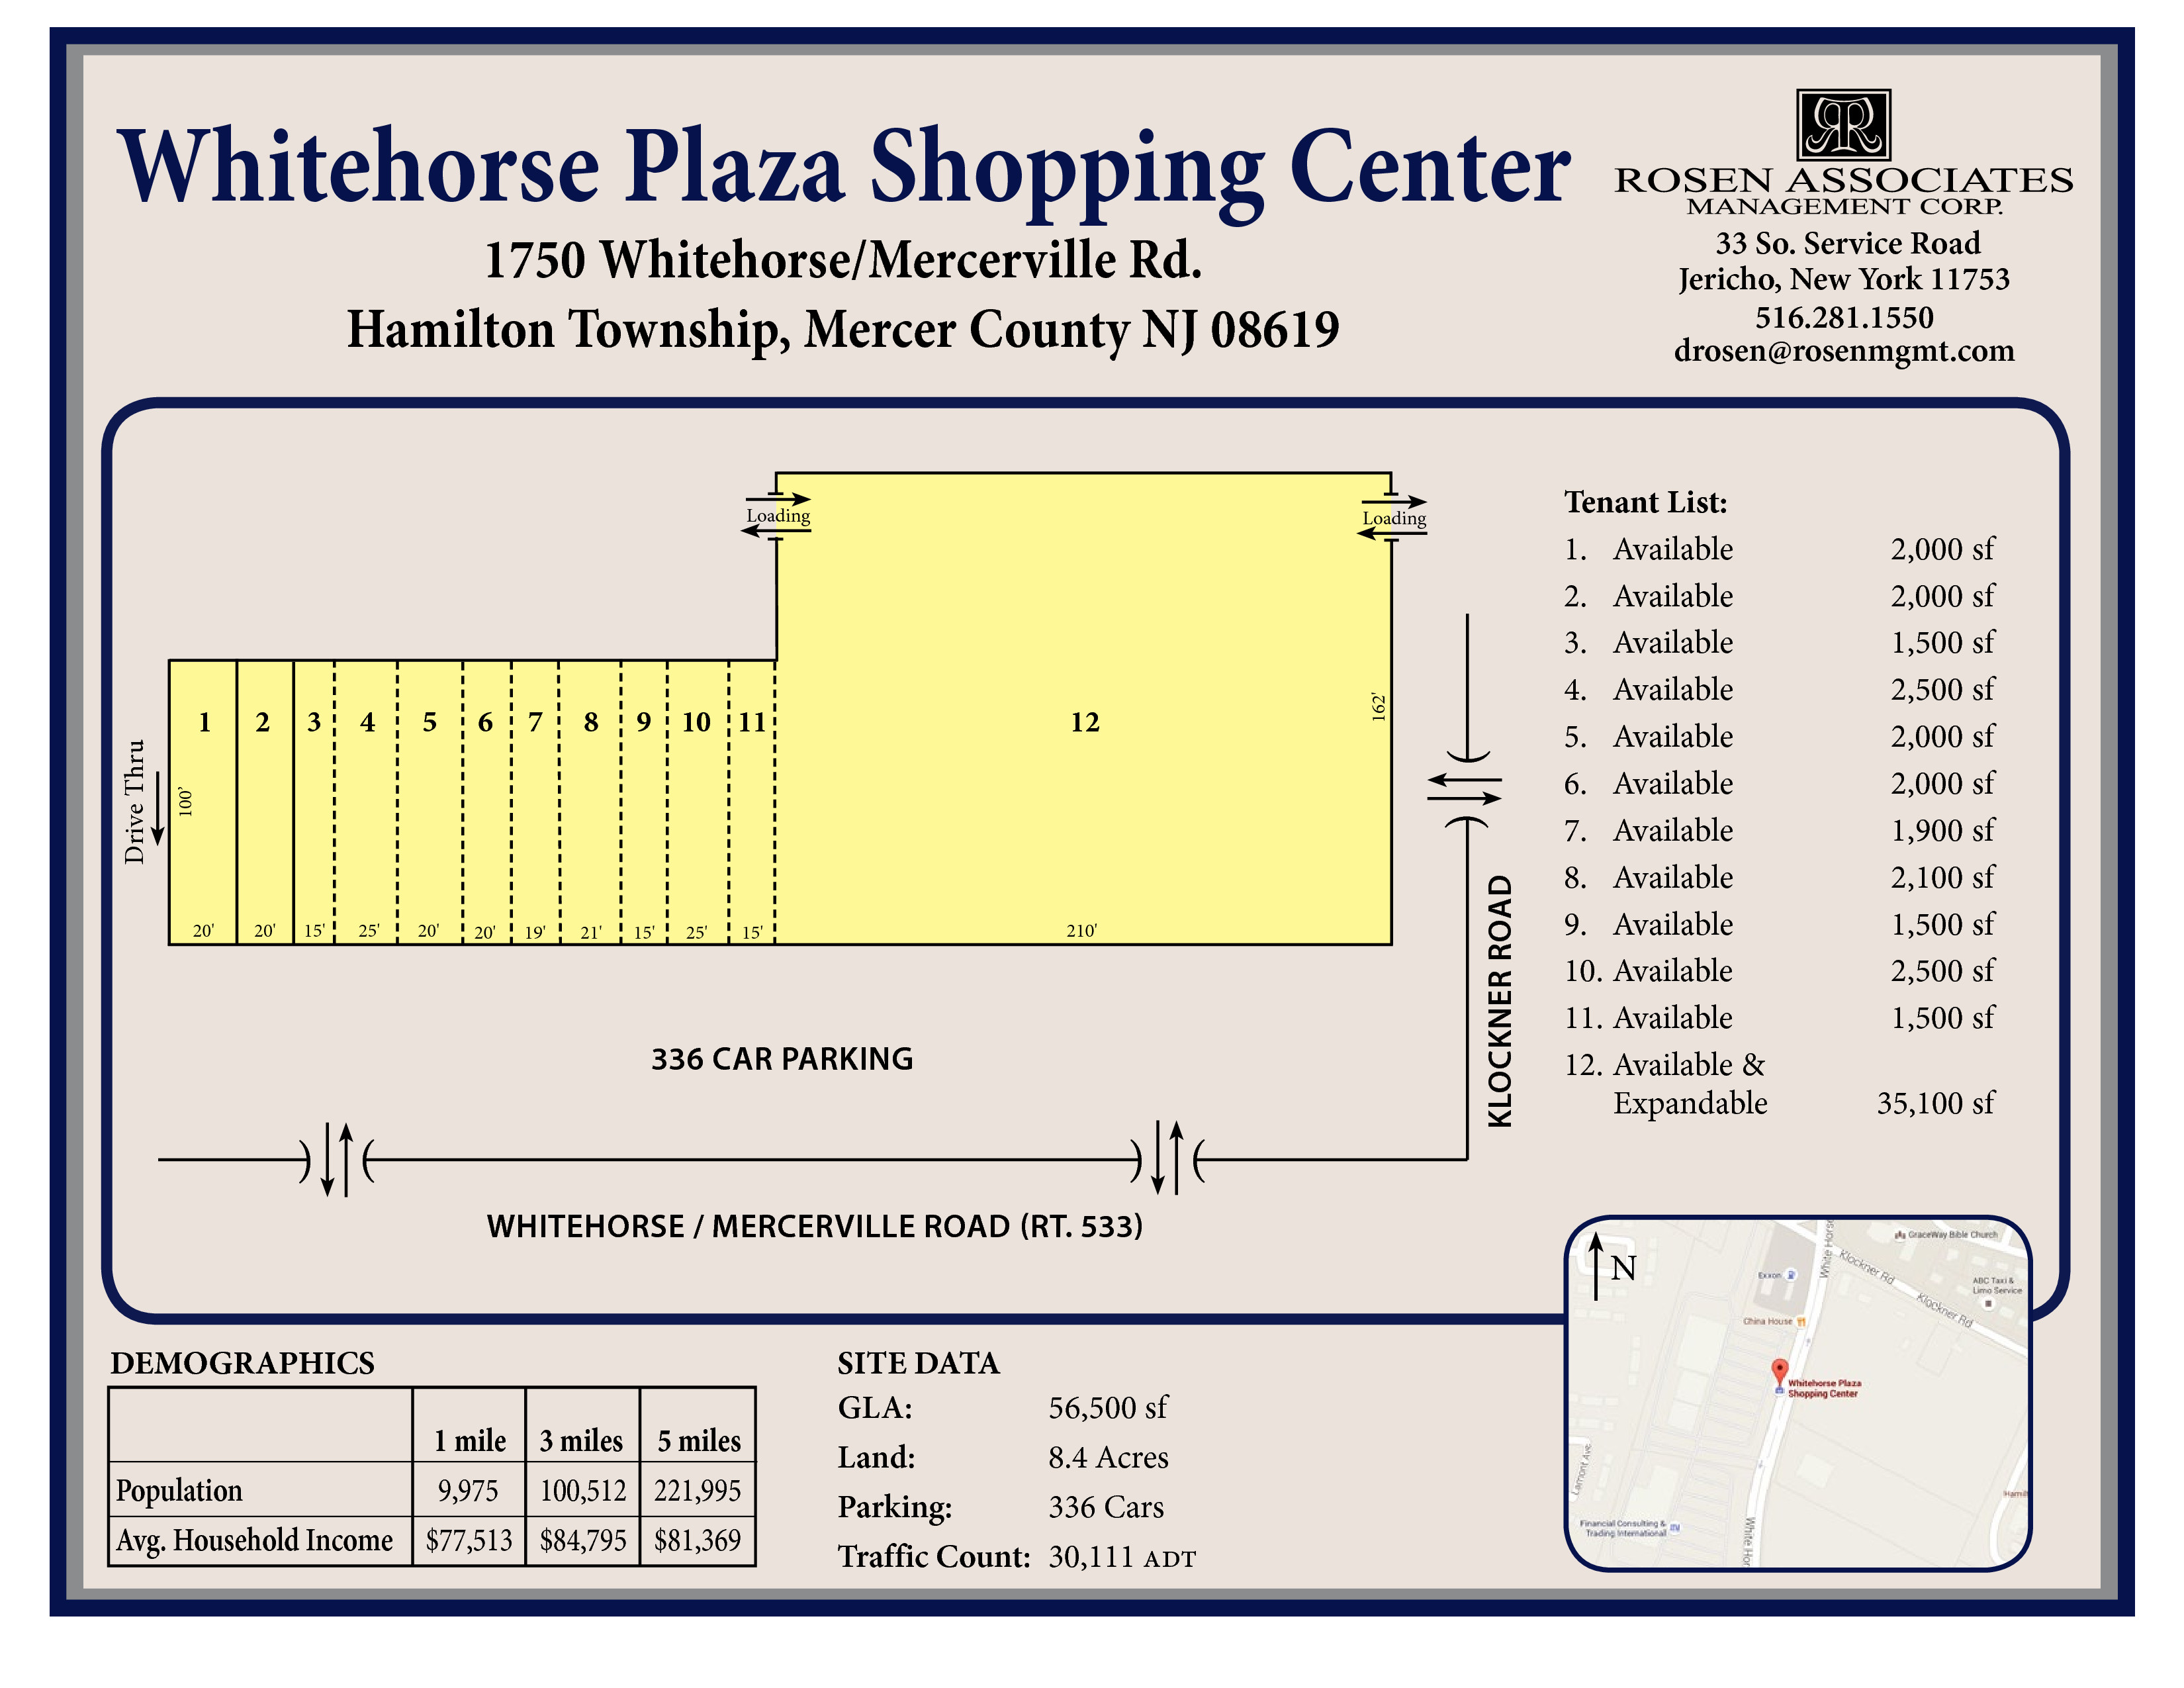 Retail Space for Lease - Whitehorse Plaza Shopping Center, 1750